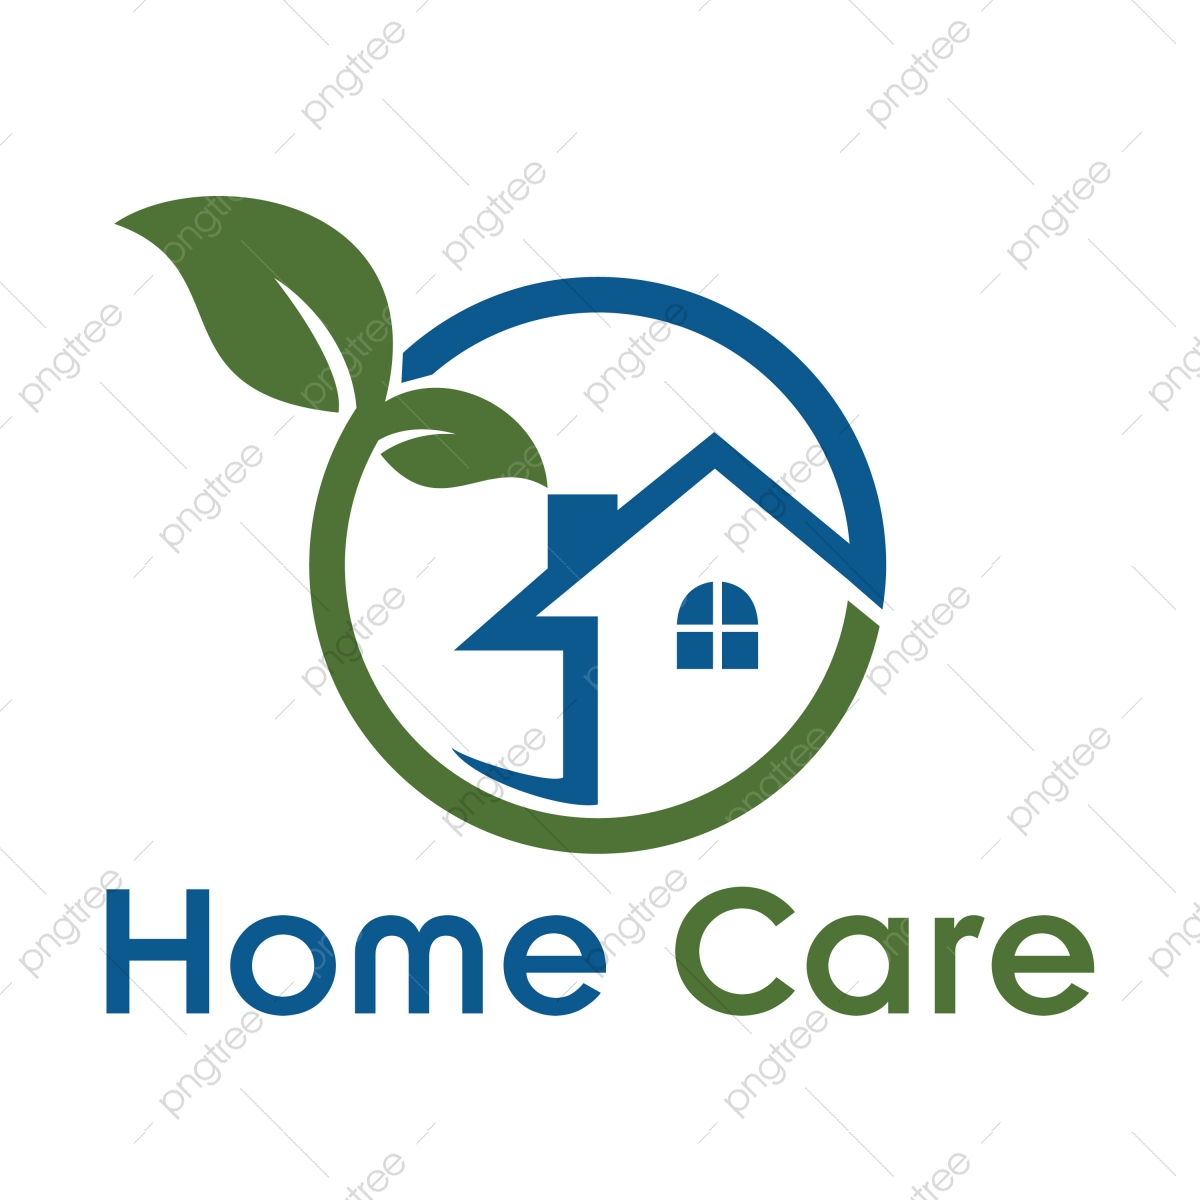 Home Care Logo Brand Branding Business Png And Vector With Transparent Background For Free Download